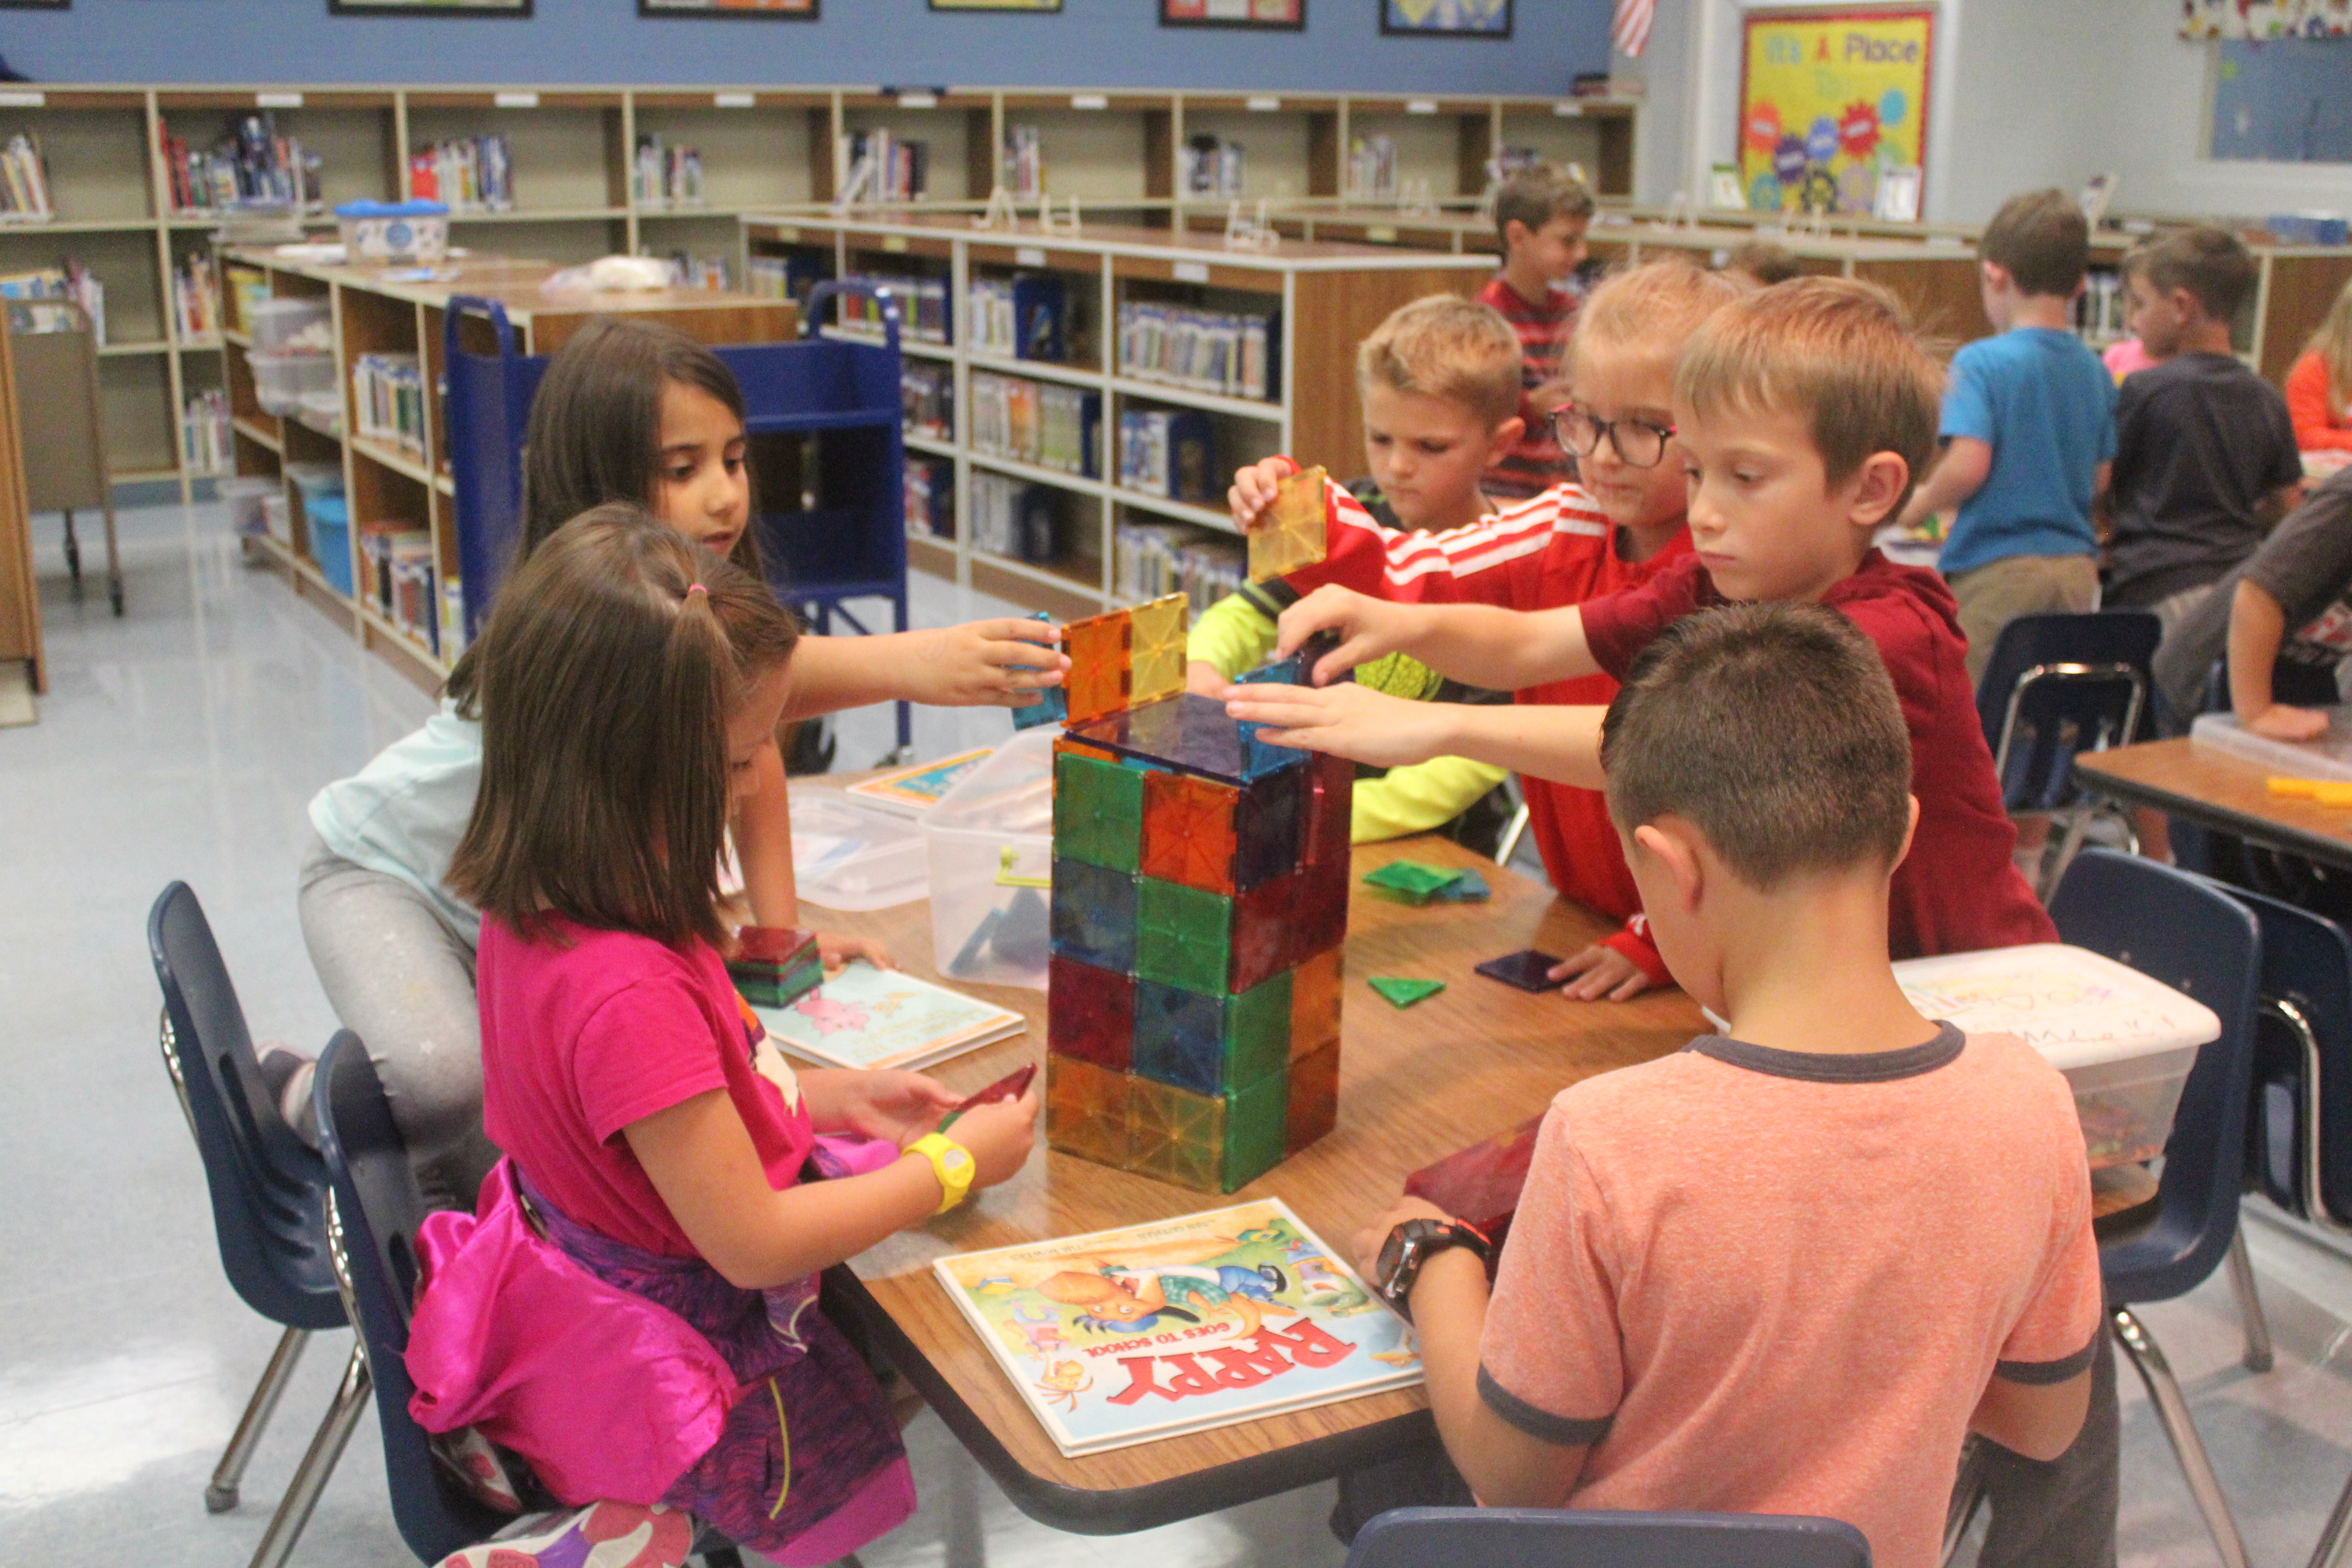 Kids play with magnetic blocks in the library.